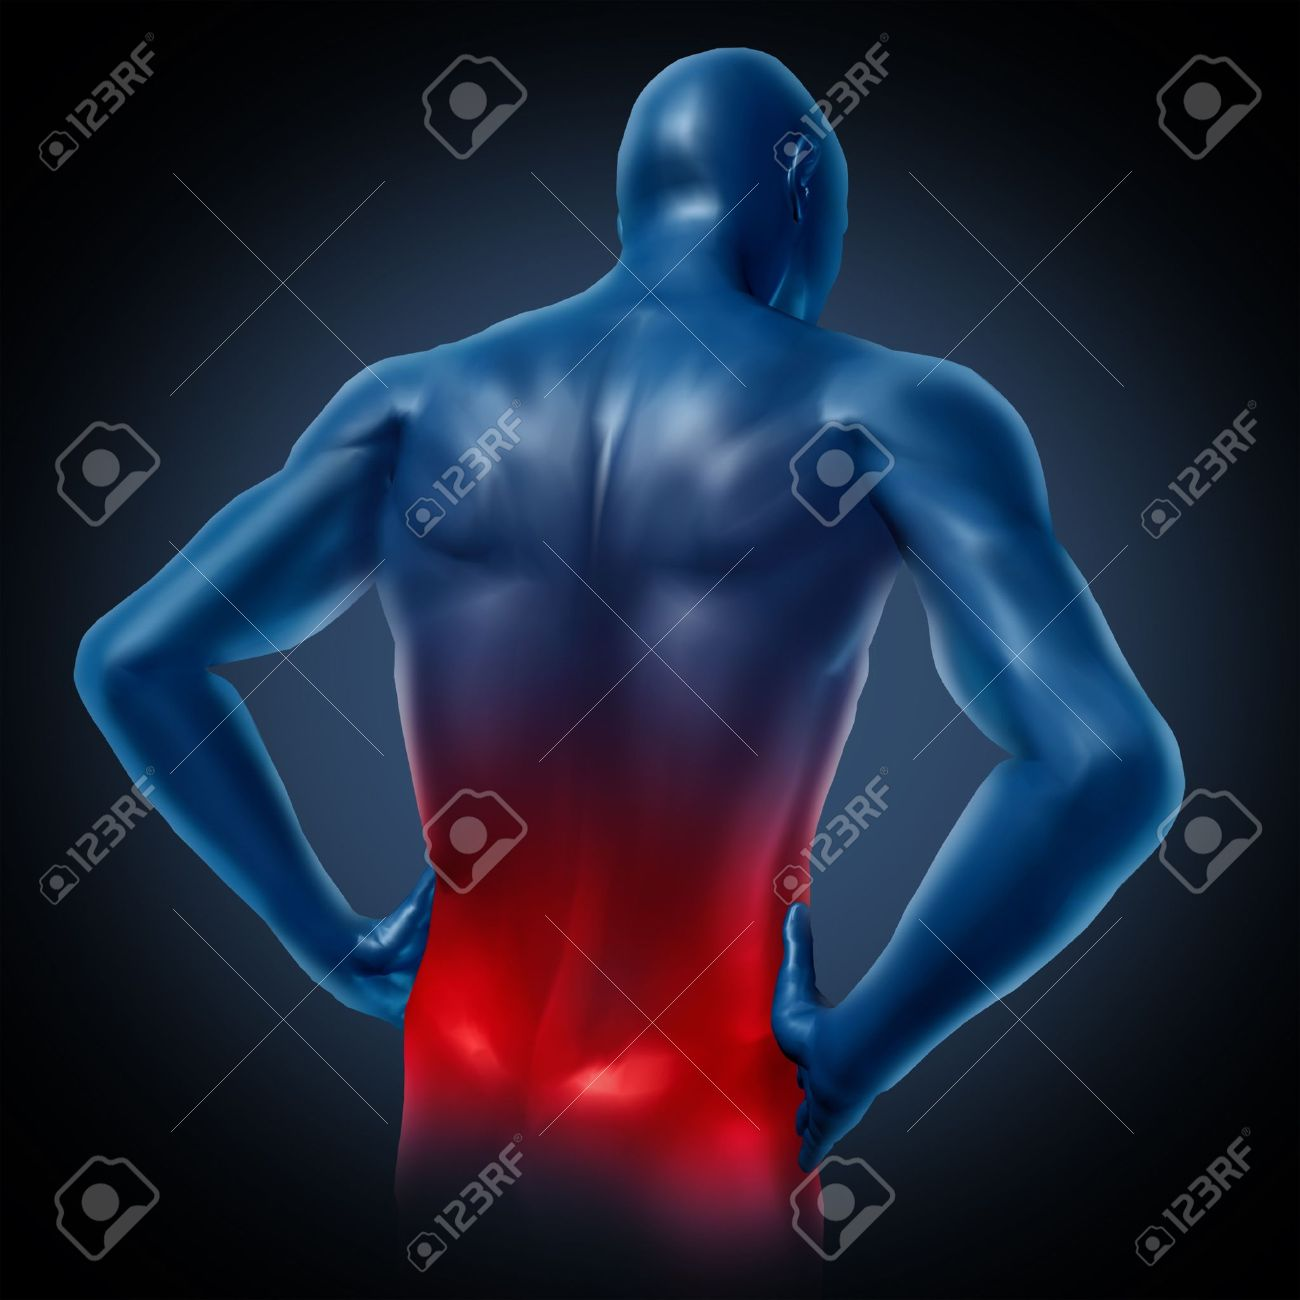 Lower back pain represented by a human body with dorsalgia disease highlighted in red showing chronic spinal medical symptoms that relate to weakness numbness and tingling. Stock Photo - 10455212